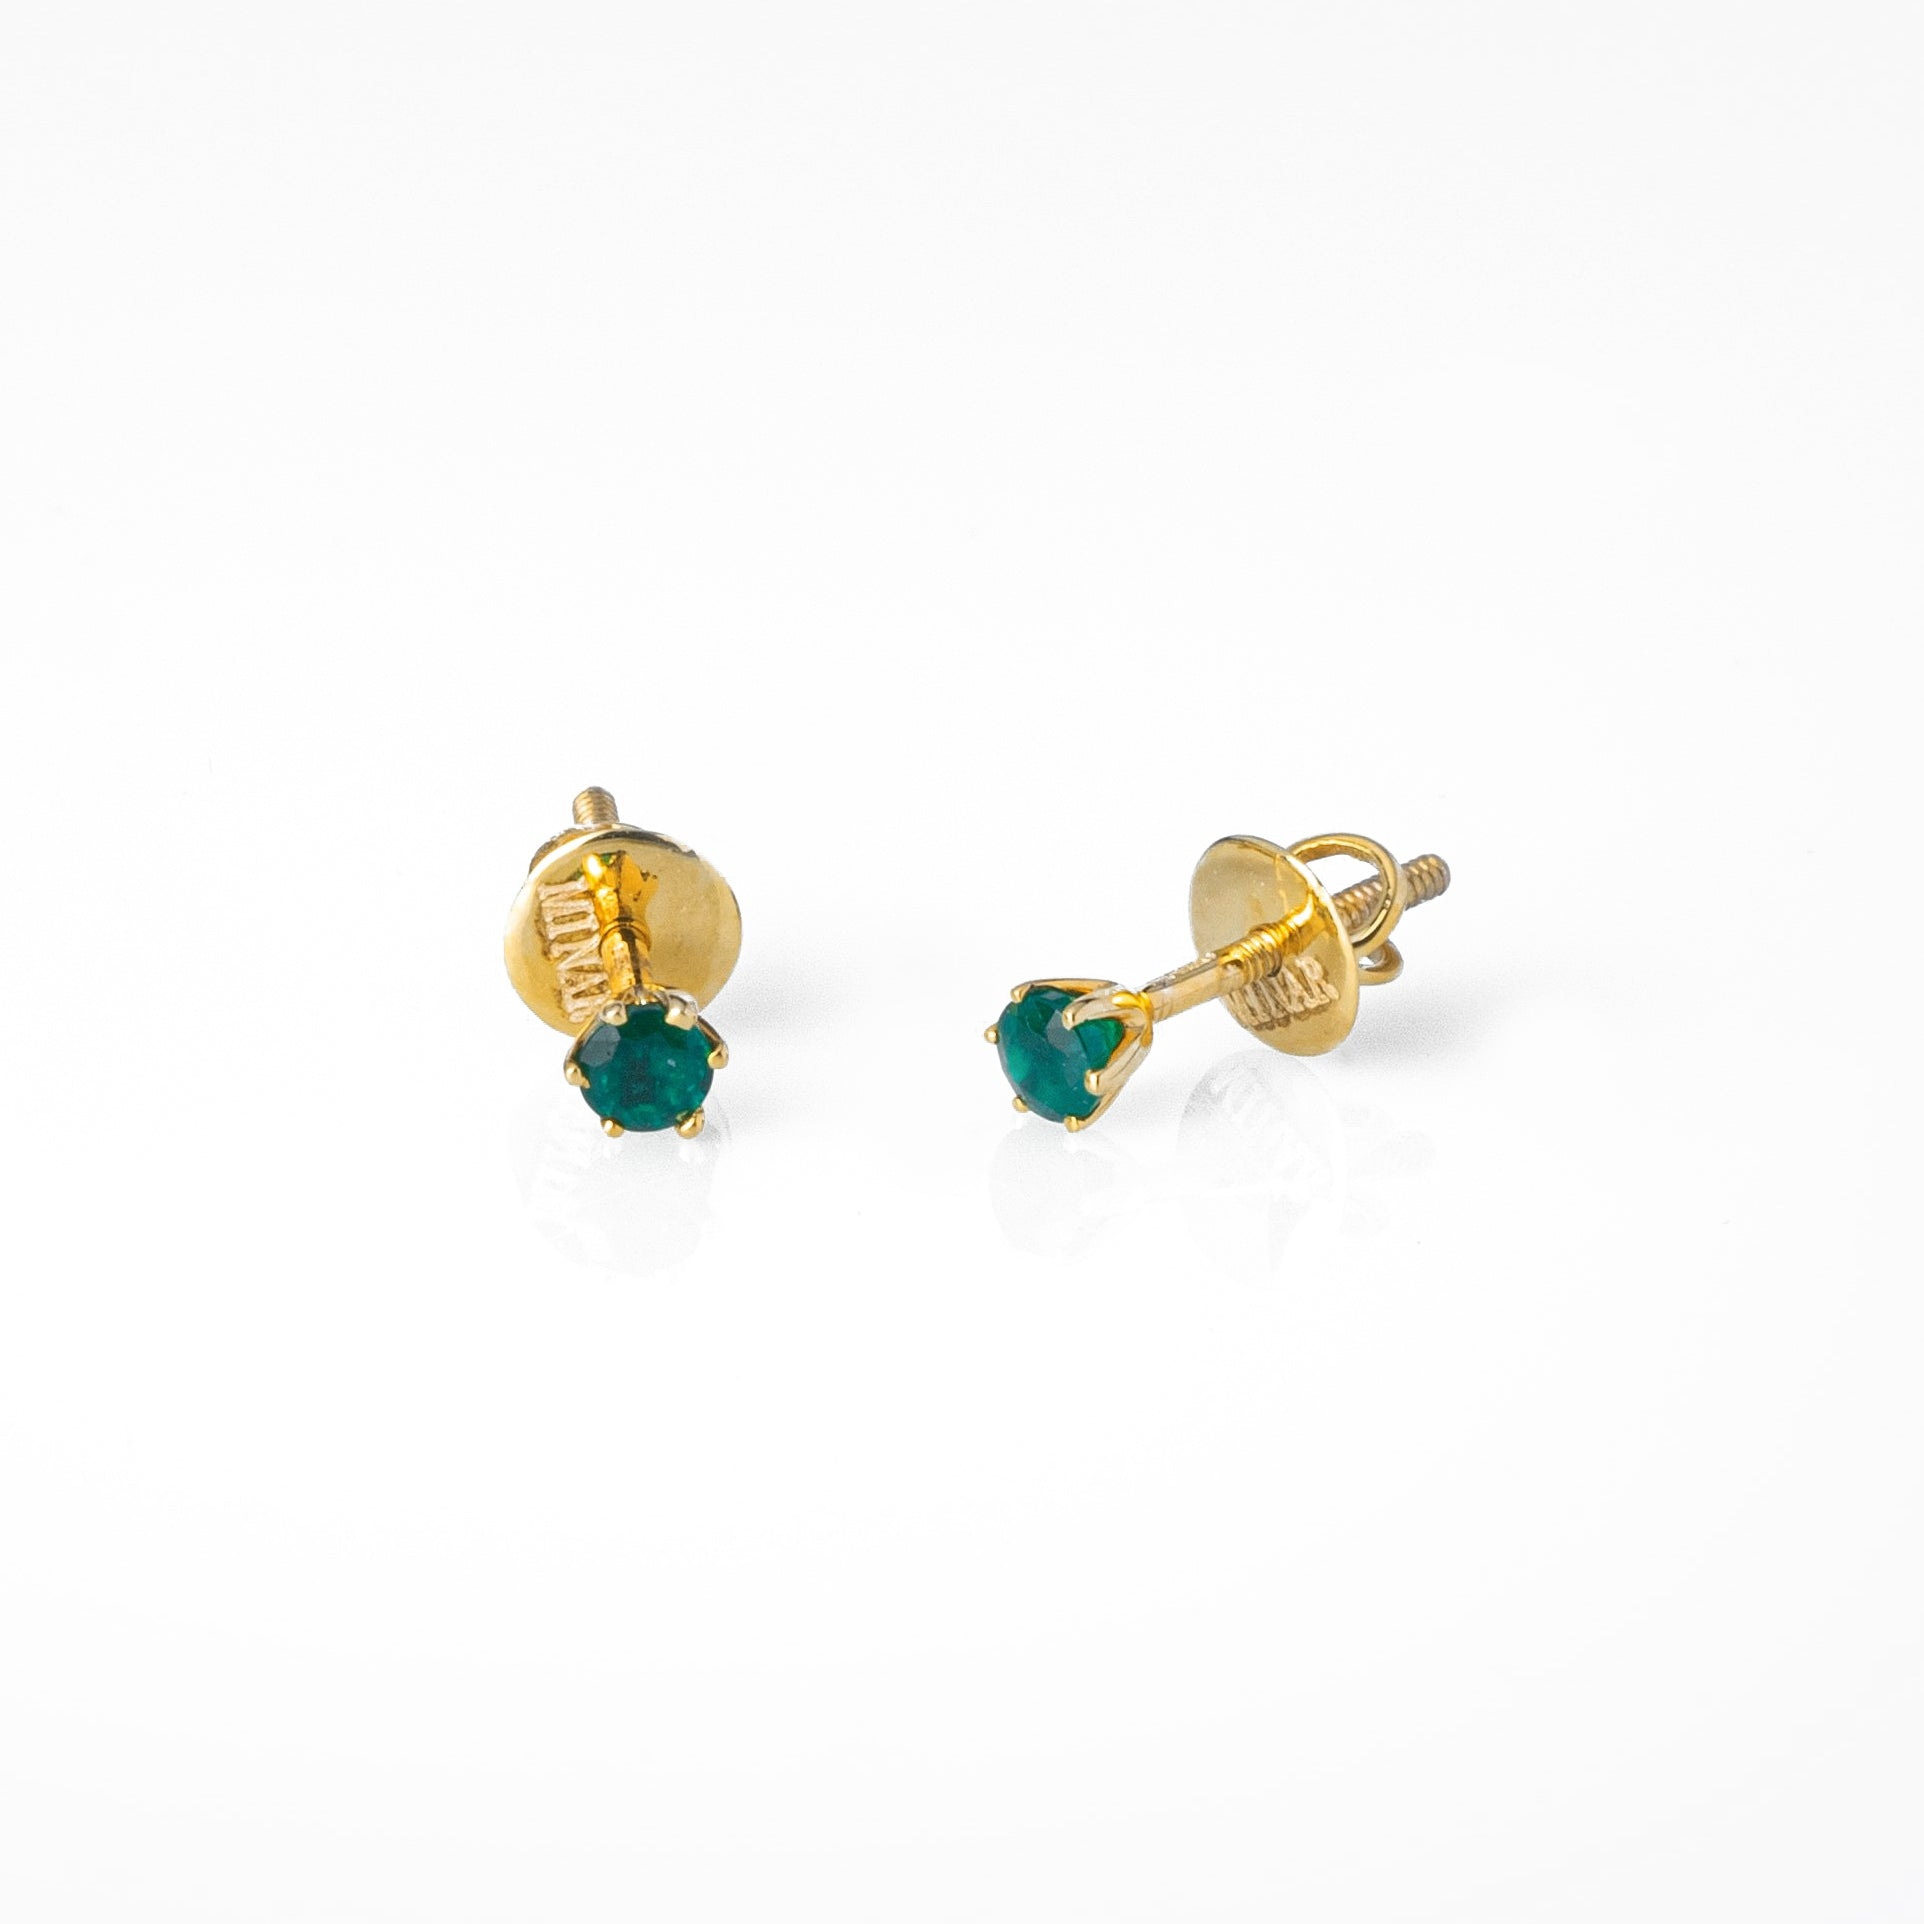 18ct Yellow Gold 0.23ct Round Brilliant Cut Emerald Stud Earrings (MCS3123)